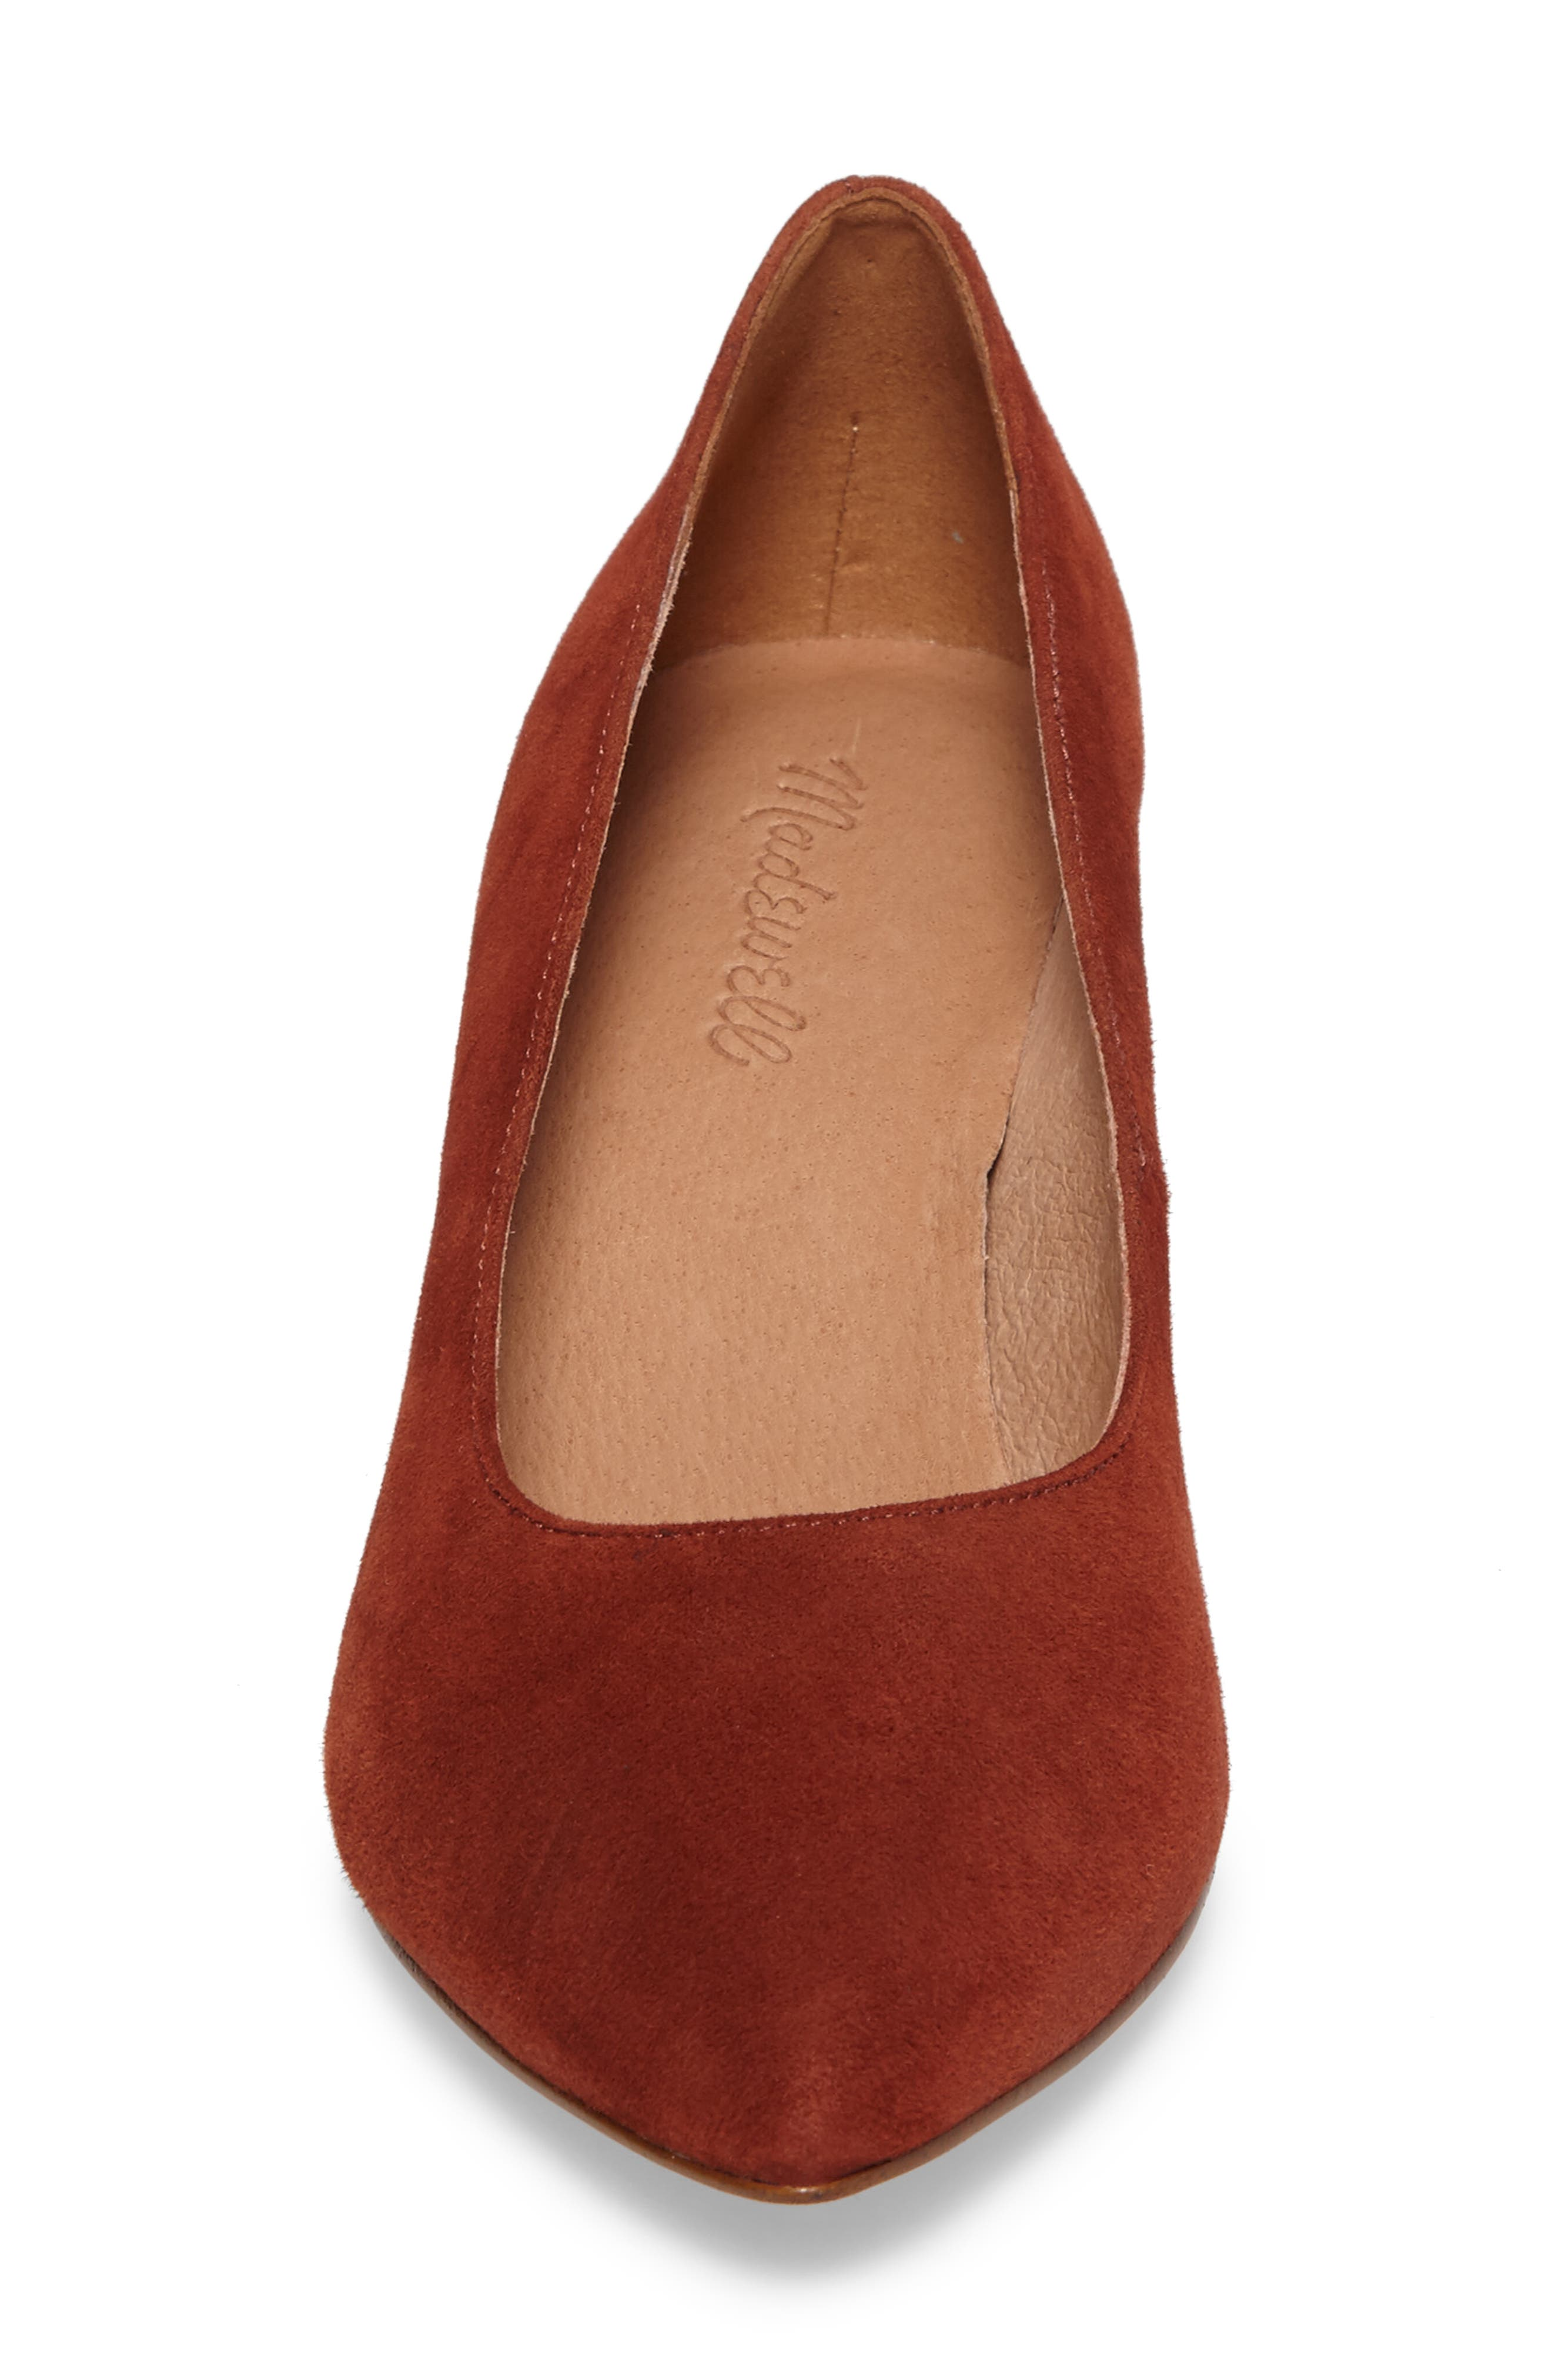 Rivka Pointy Toe Pump,                             Alternate thumbnail 4, color,                             Vintage Redwood Suede